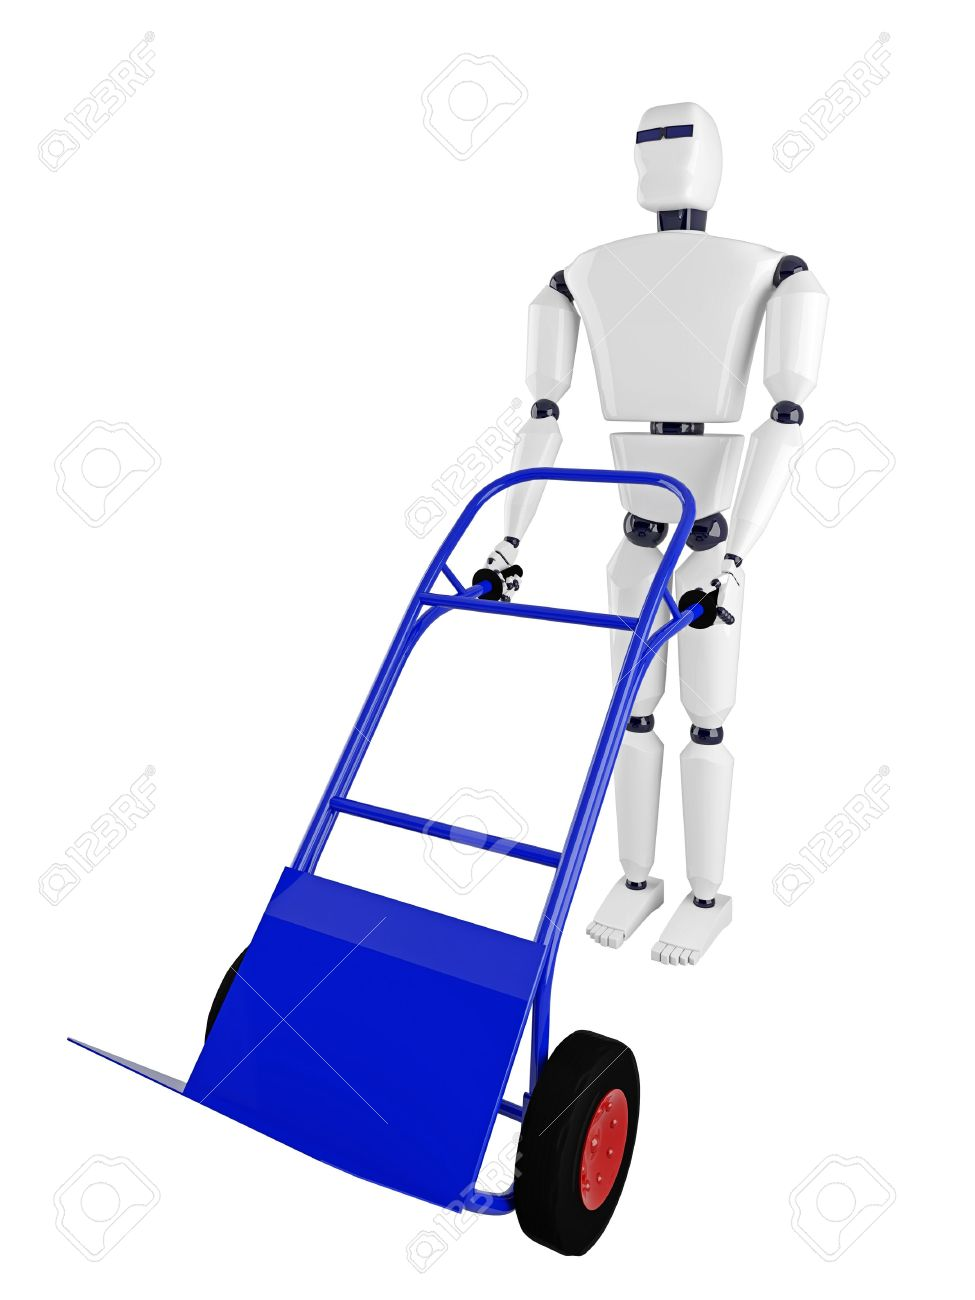 The Robot And The Blue Pushcart On A White Background Stock Photo.